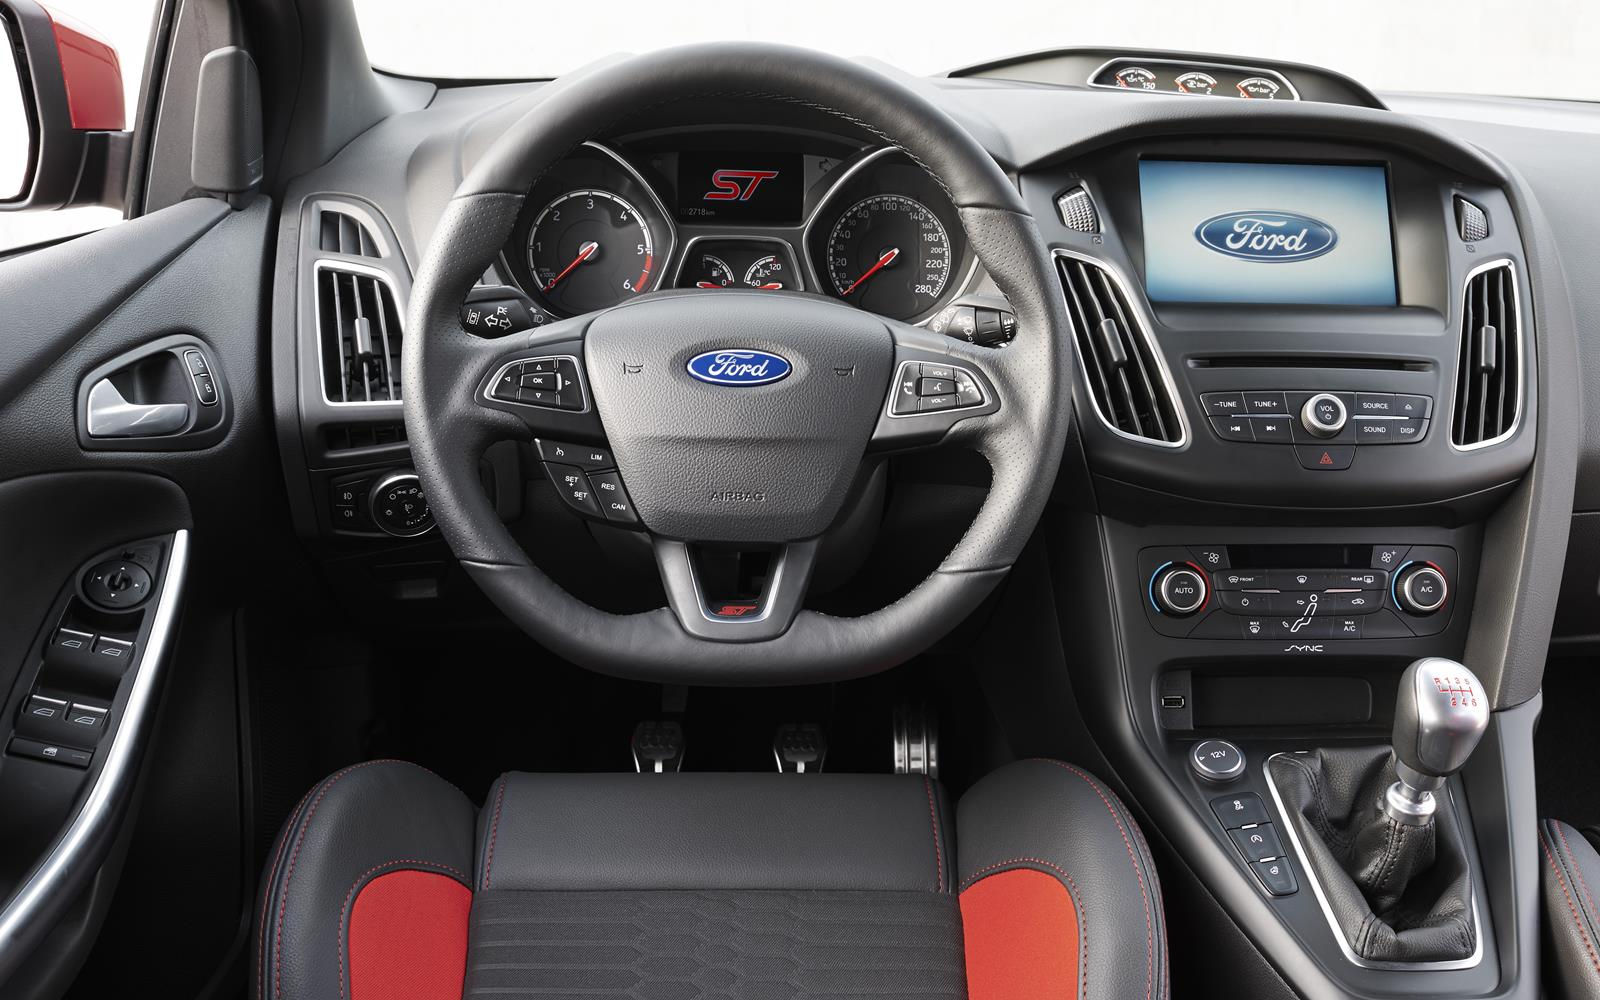 Ford Focus ST 2015 Instrument Binnacle